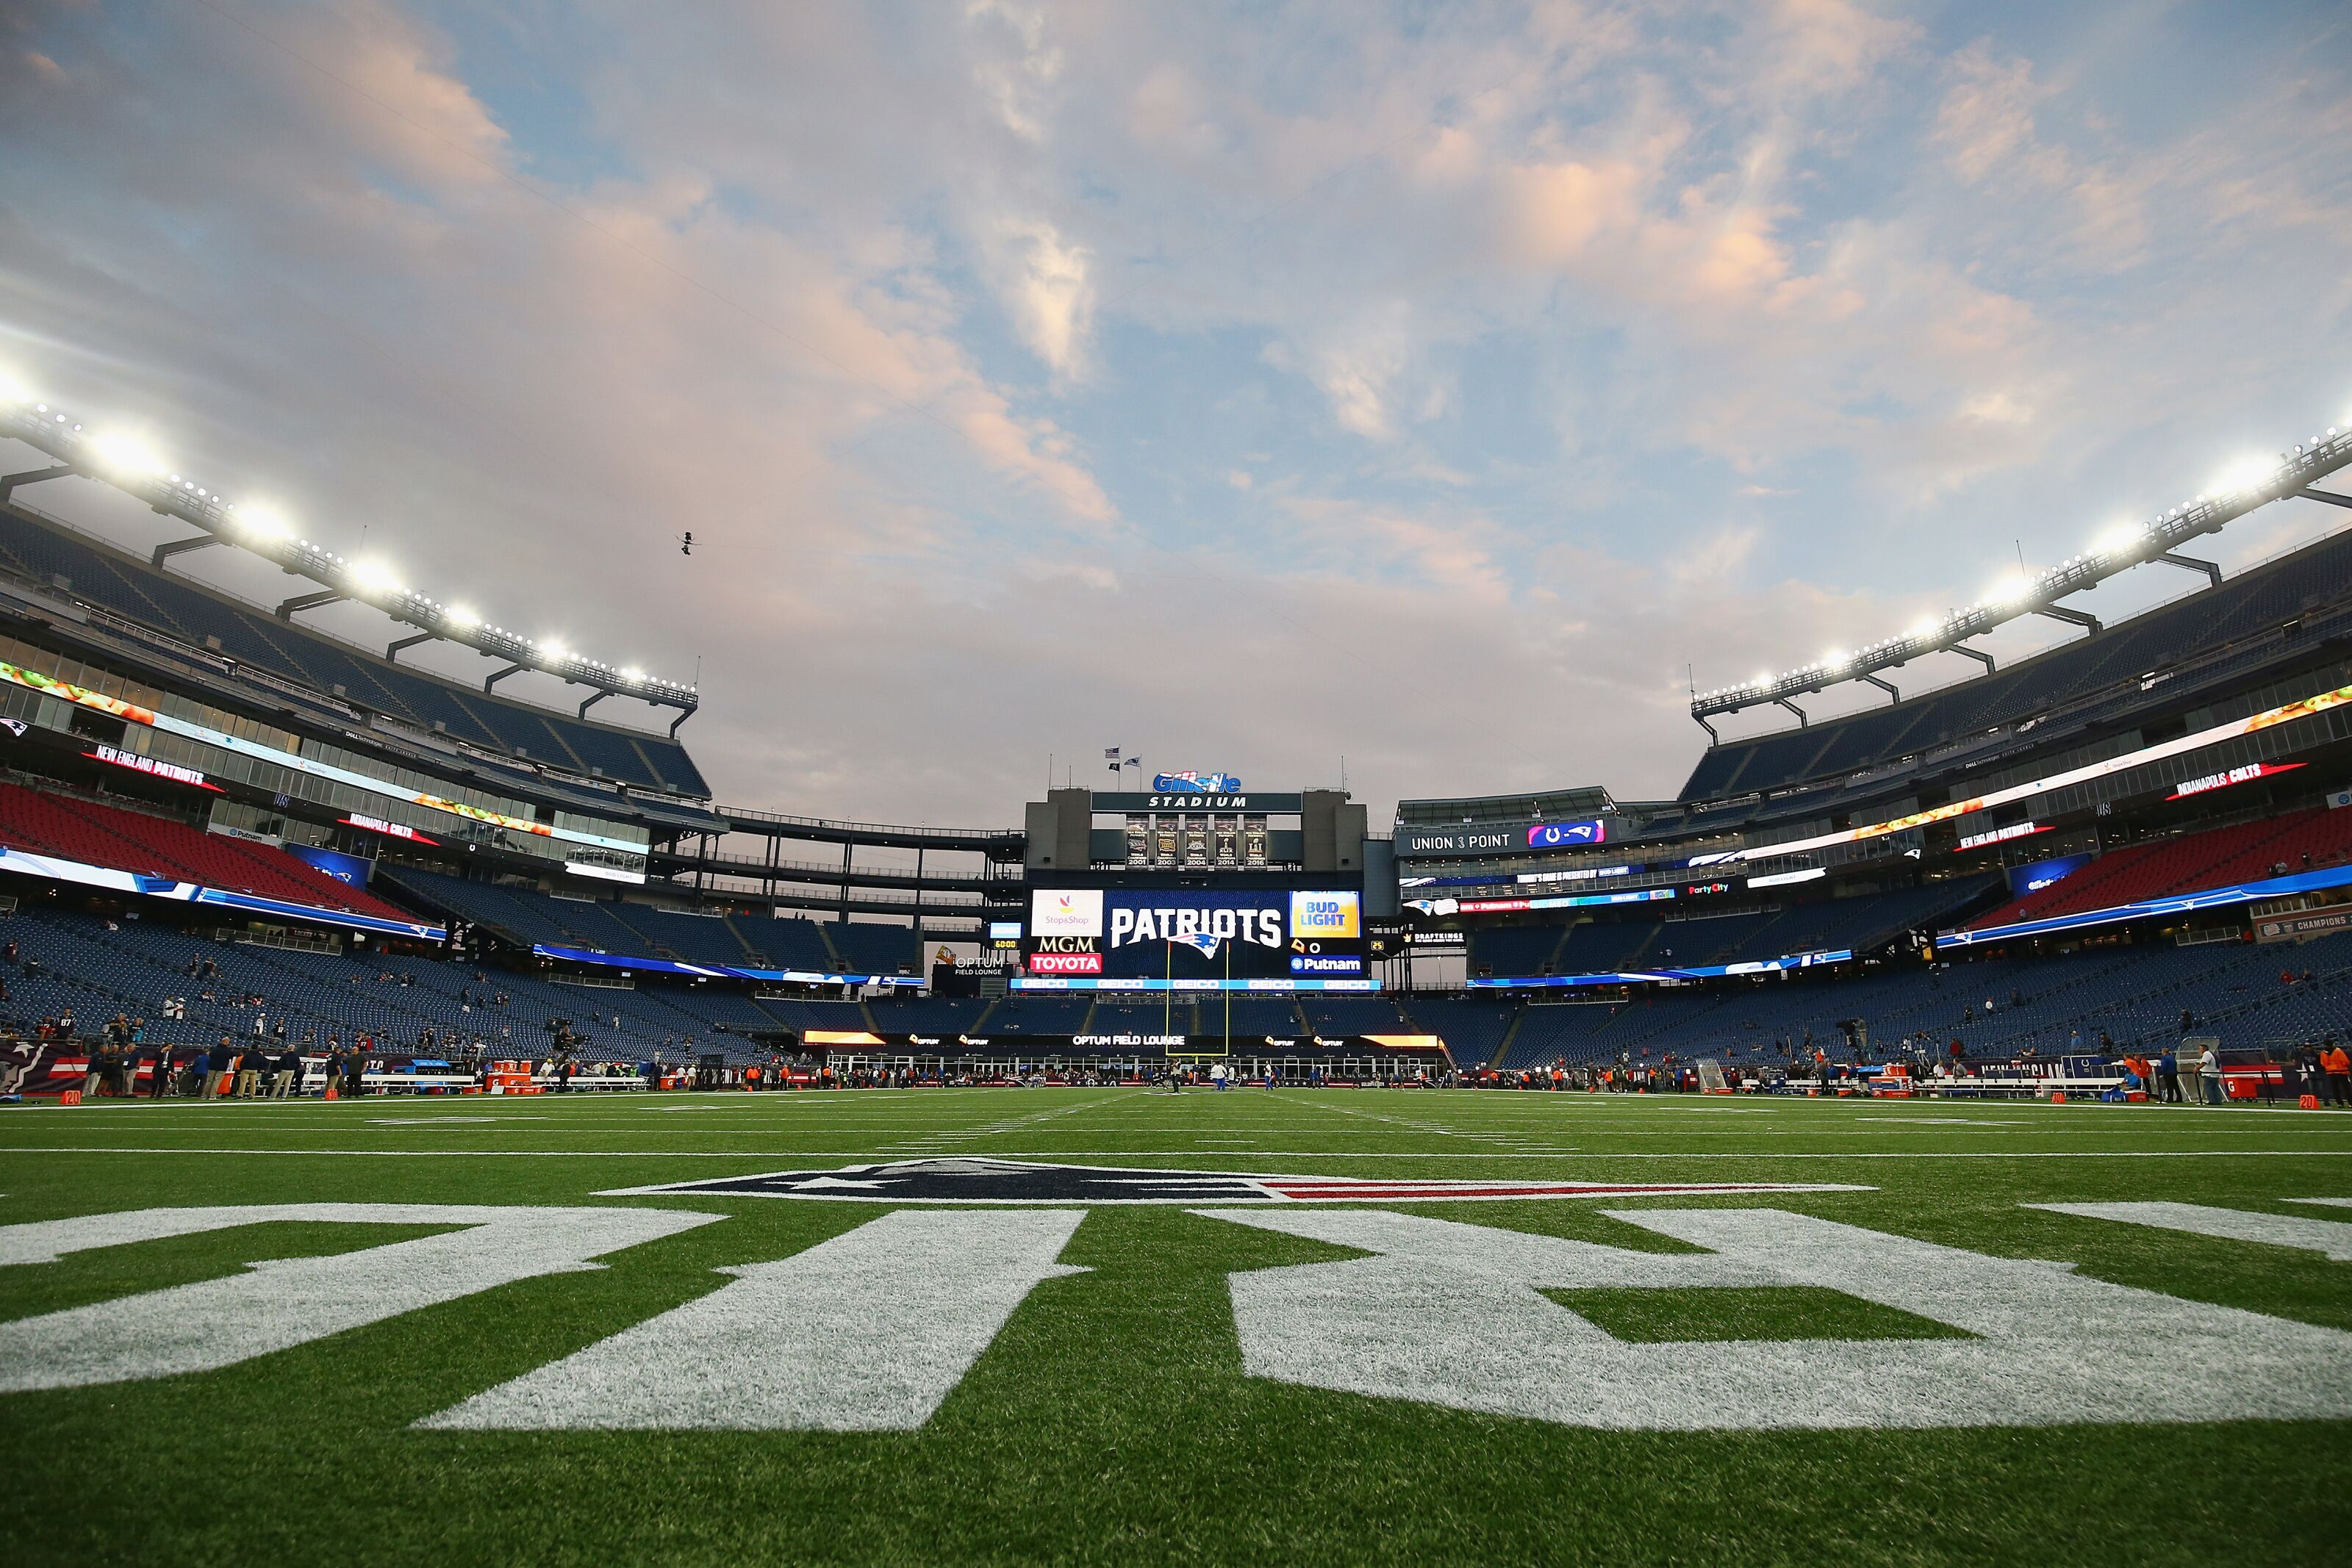 209bac58147 Packers vs. Patriots Week 9: Start time, TV info and more